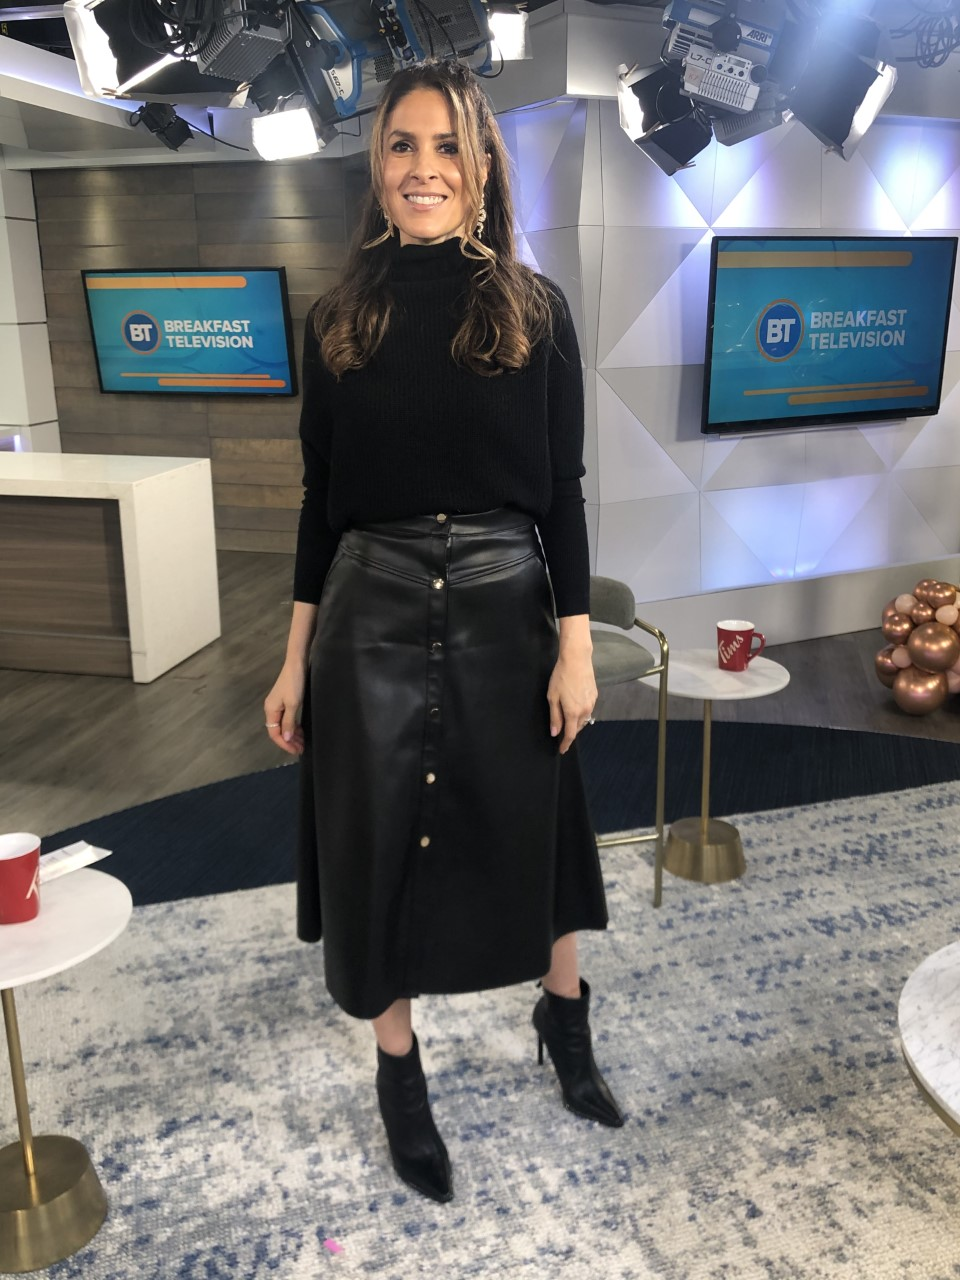 Dina wearing black leather skirt with black long sleeve